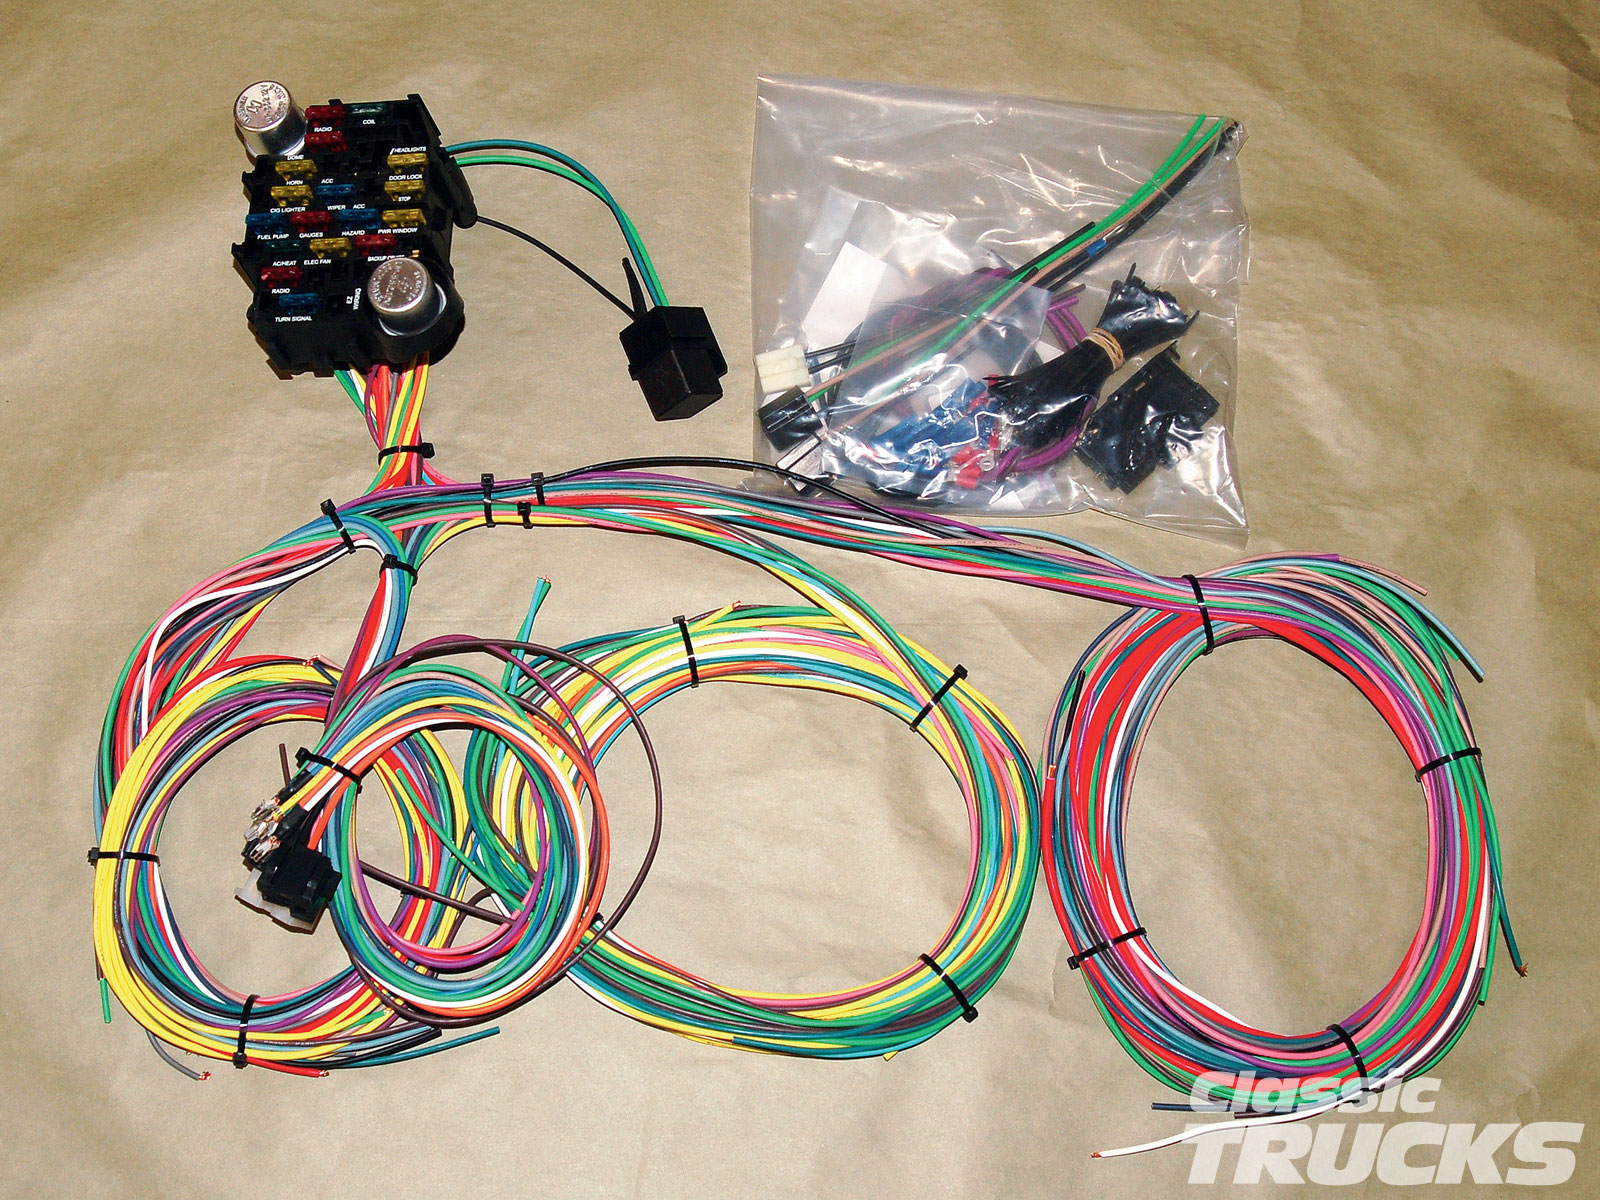 1010clt 02 o aftermarket wiring harness install kit?resize=640%2C480 how much does a wire harness cost to replace hobbiesxstyle how much does it cost to replace a wiring harness at metegol.co